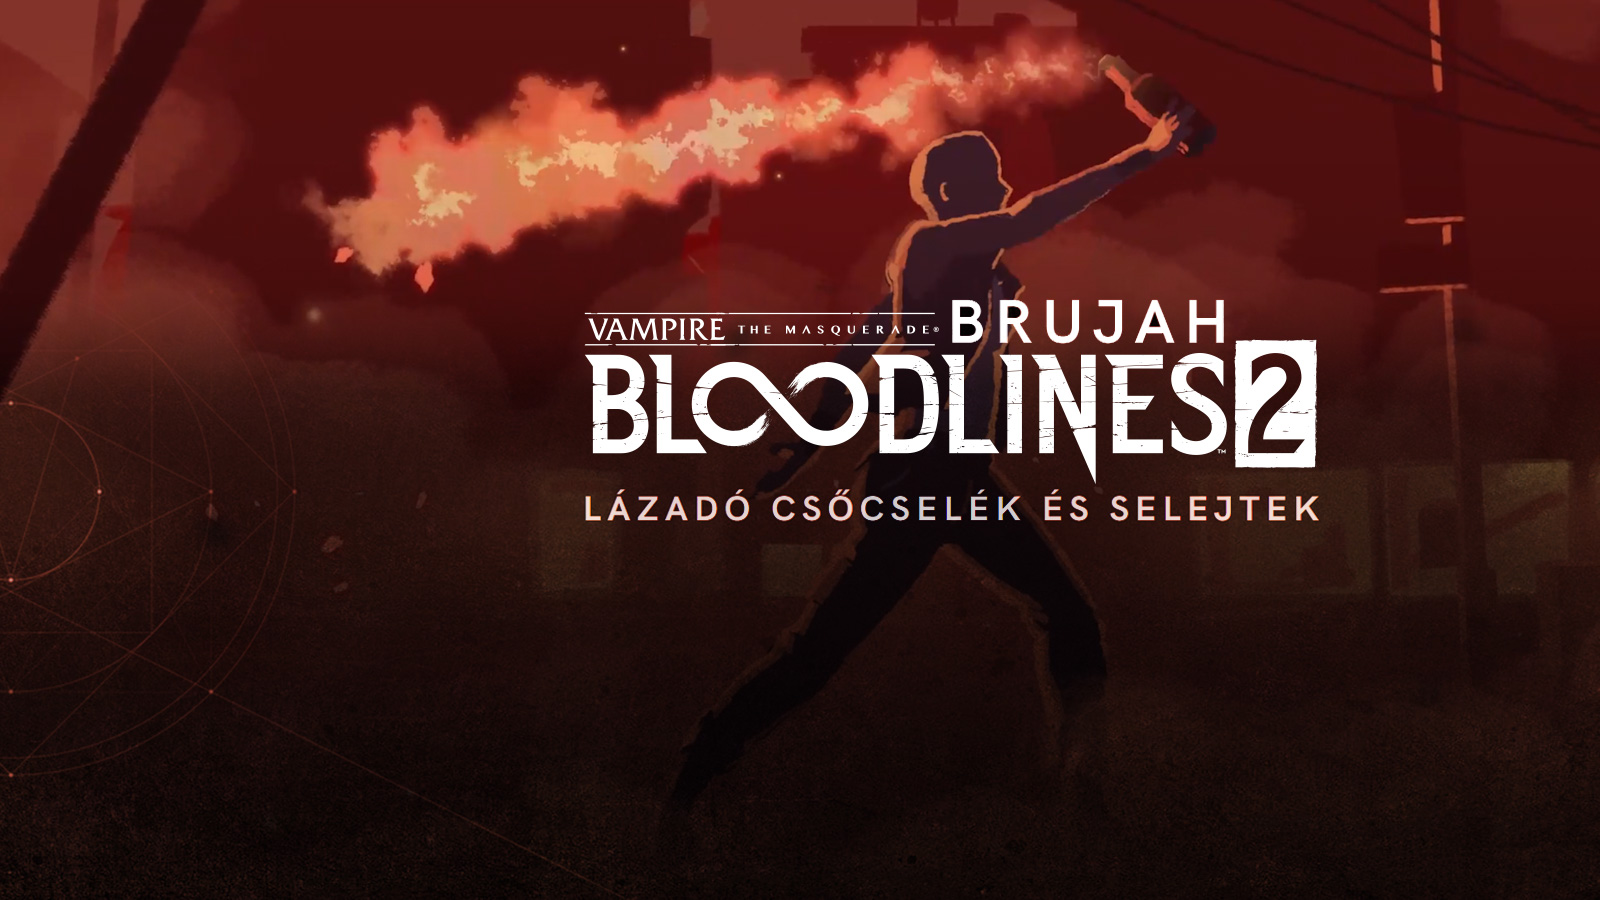 Vampire: the Masquerade - Bloodlines 2 Brujah